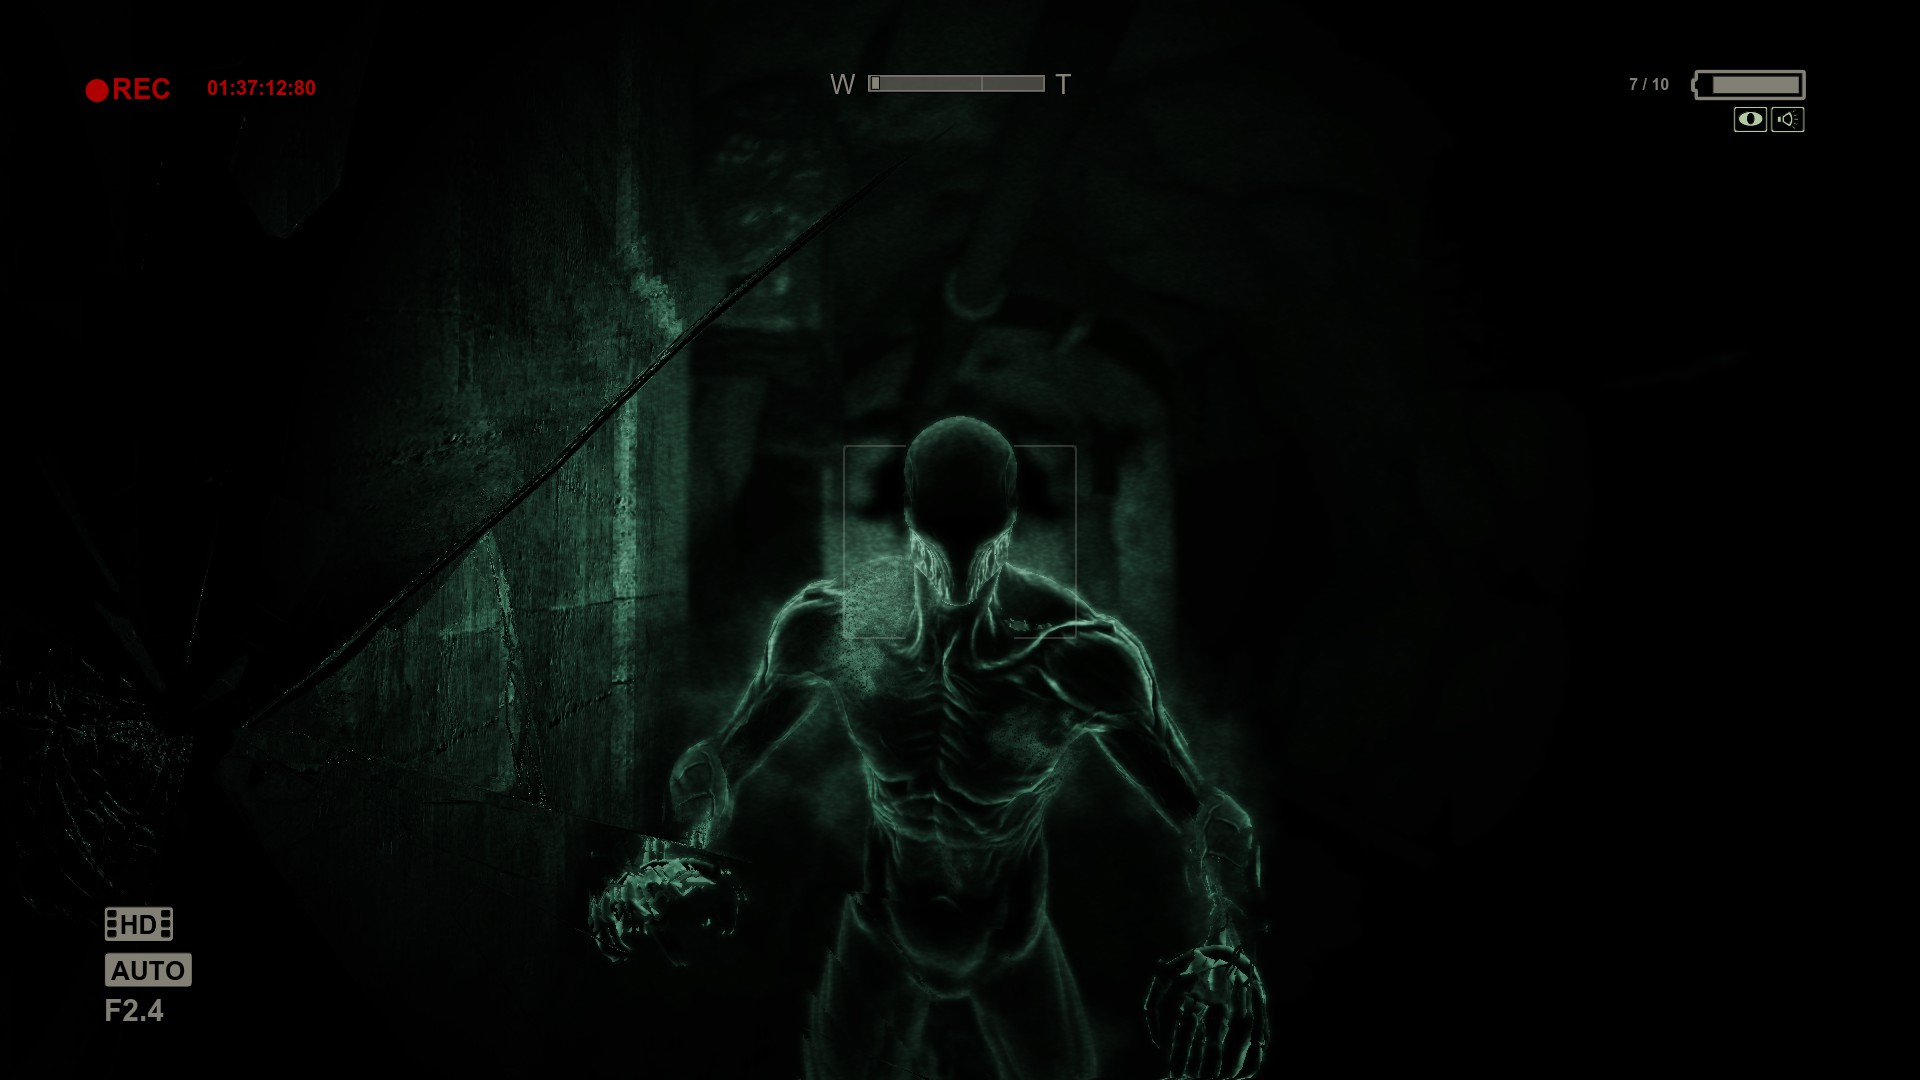 What I want from Outlast LoadScreen 1920x1080